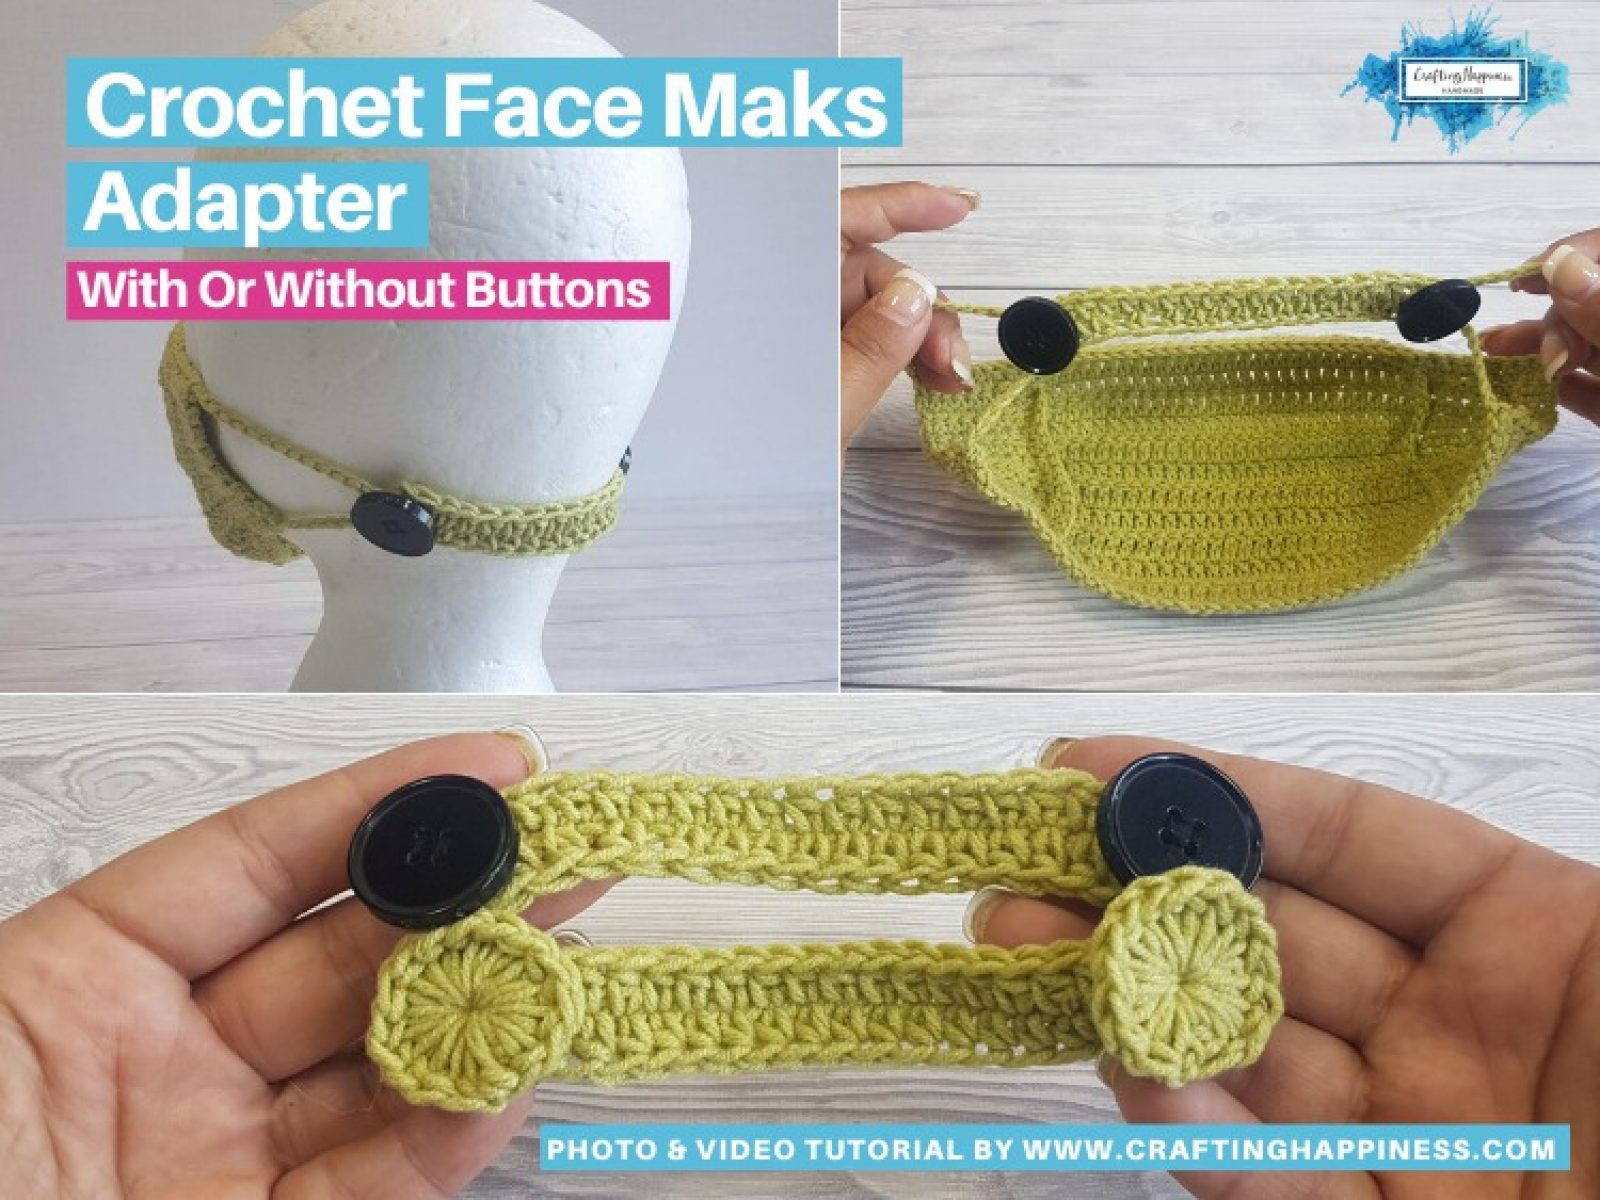 Crochet Face Mask Adapter EVEN IF YOU DON'T HAVE BUTTONS FACEBOOK POSTER